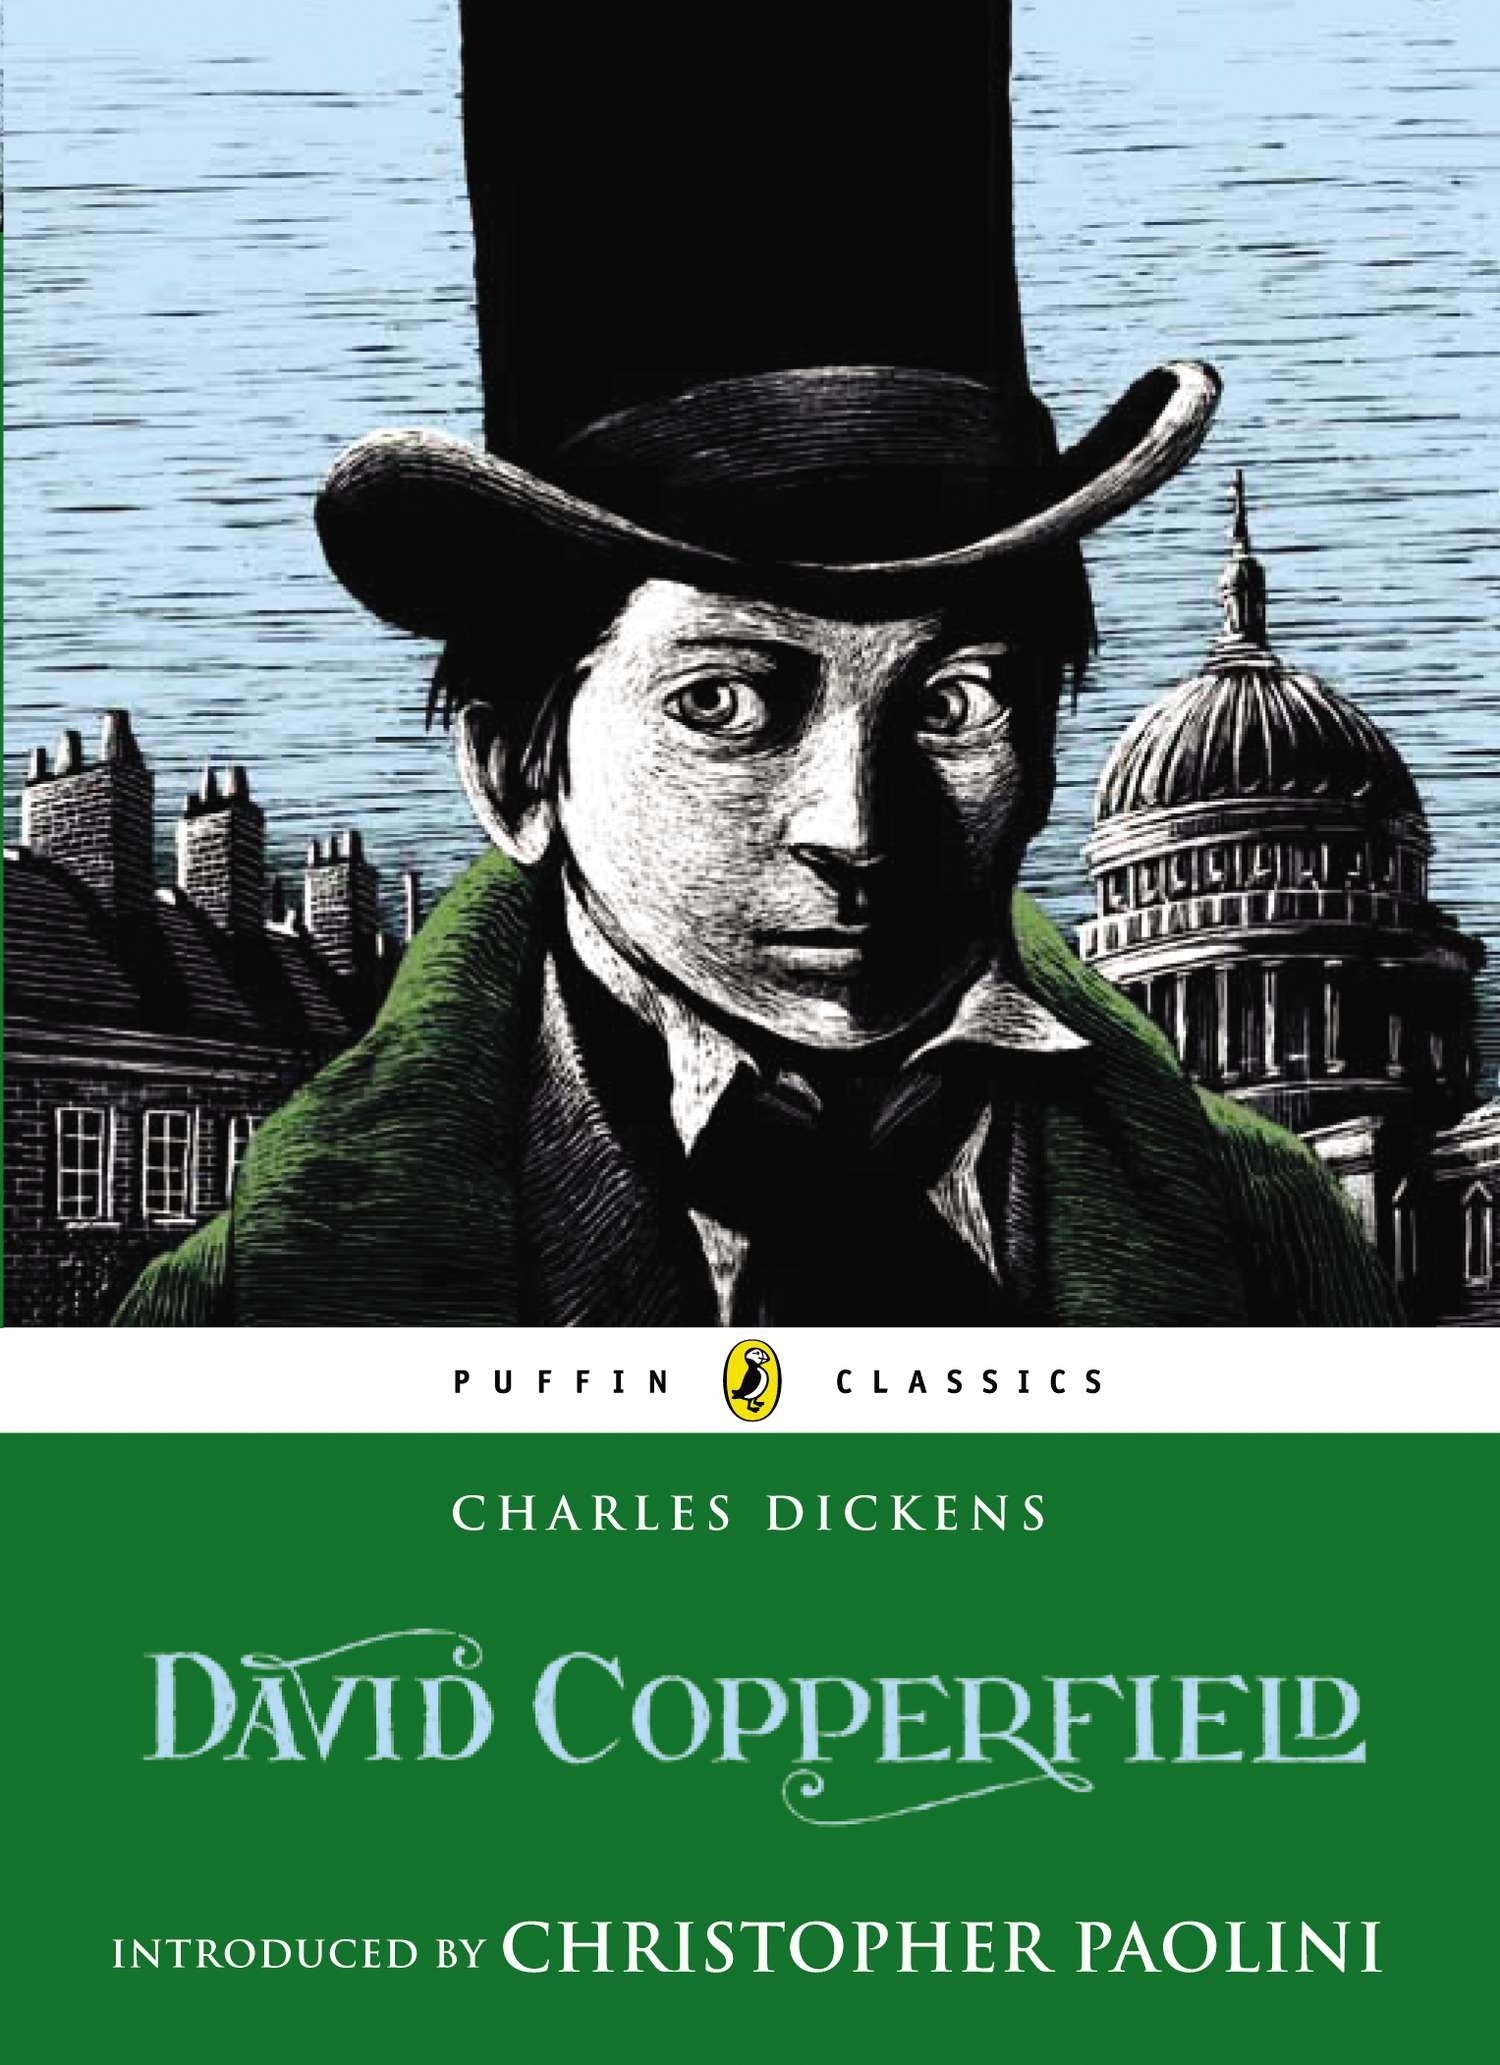 david copperfield books david copperfield